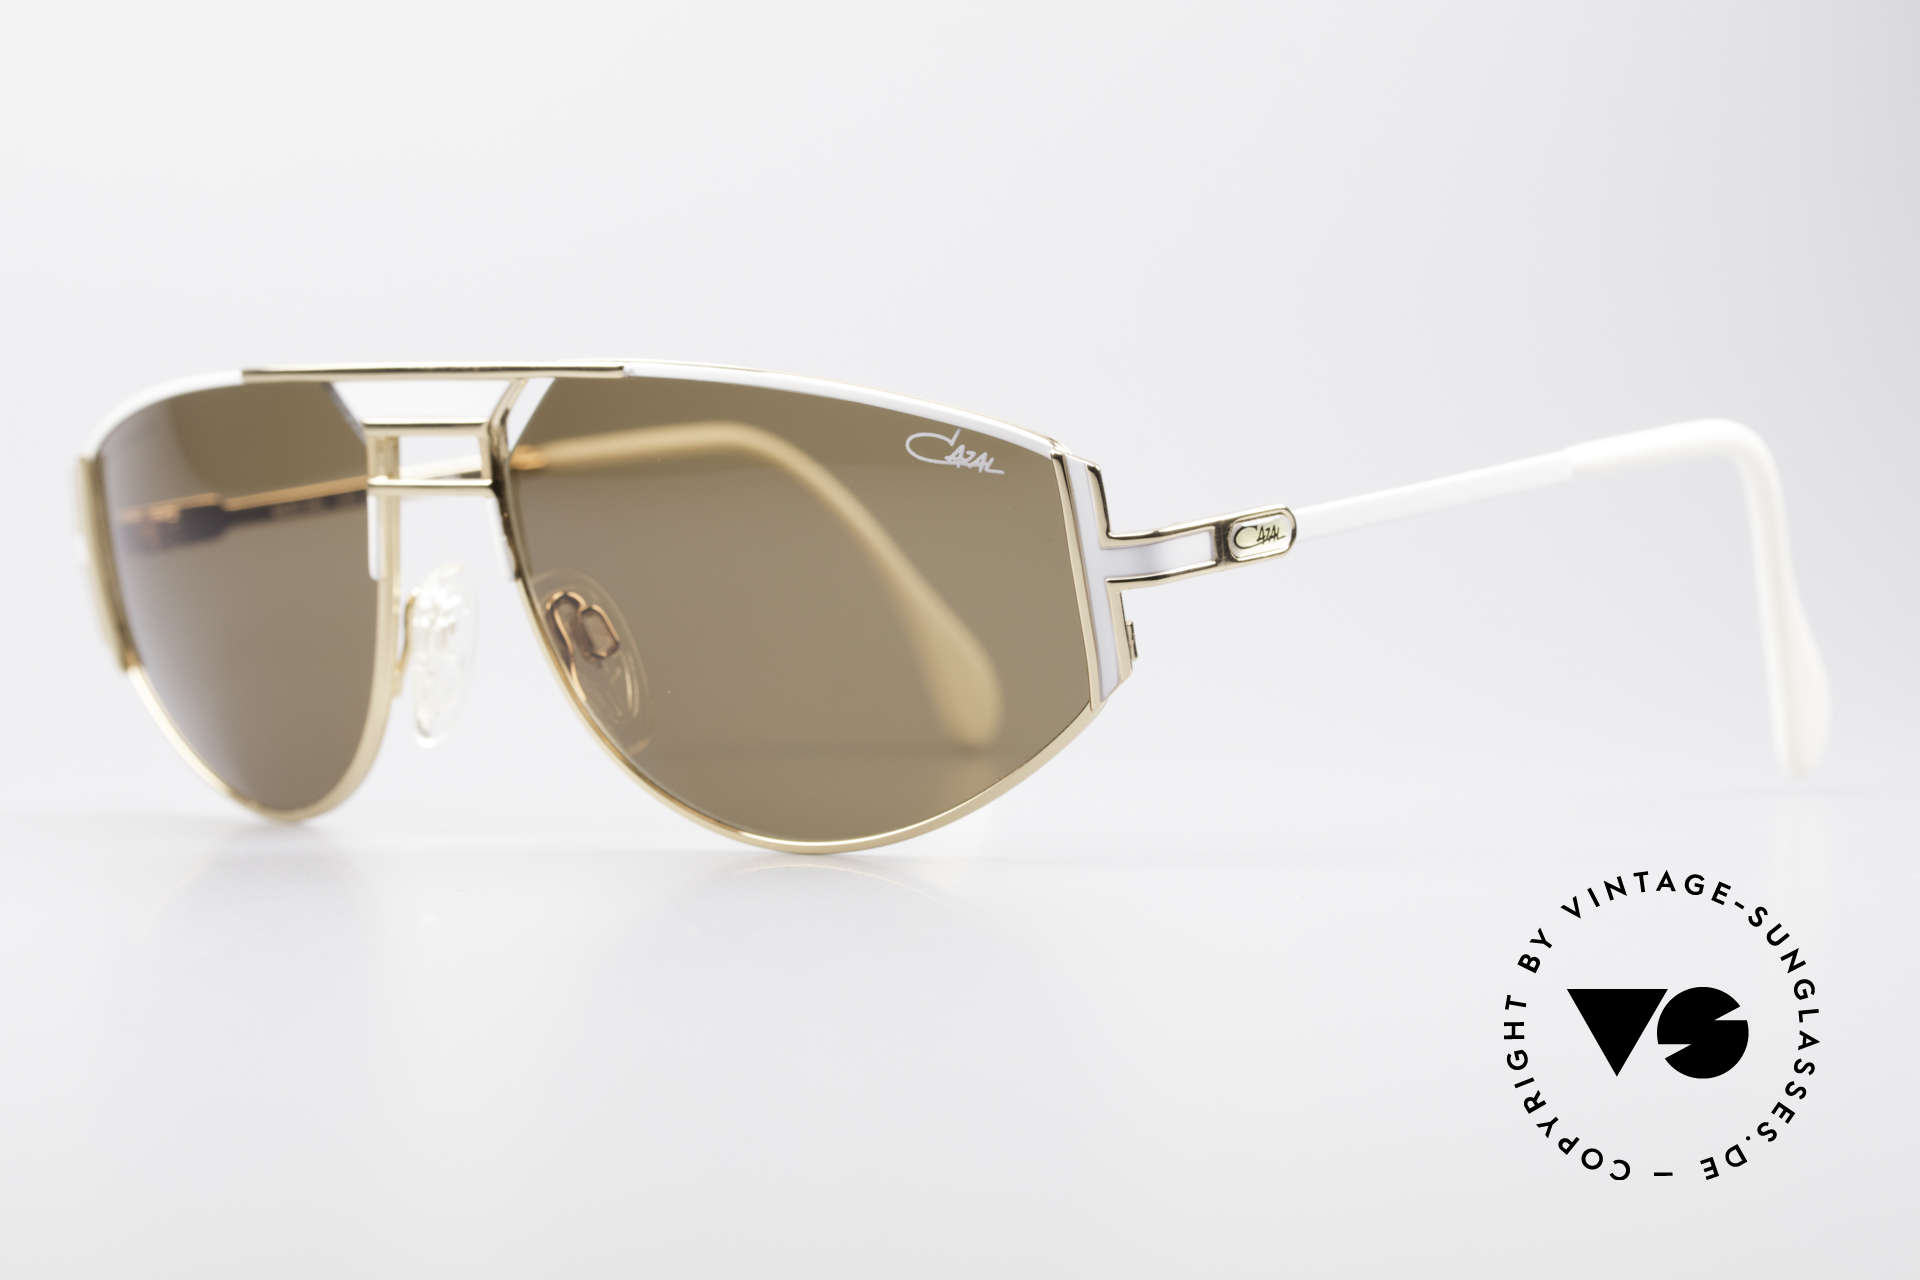 Cazal 964 True 90's Original Shades, terrific creation by famous CAri ZALloni (Mr. CAZAL), Made for Men and Women